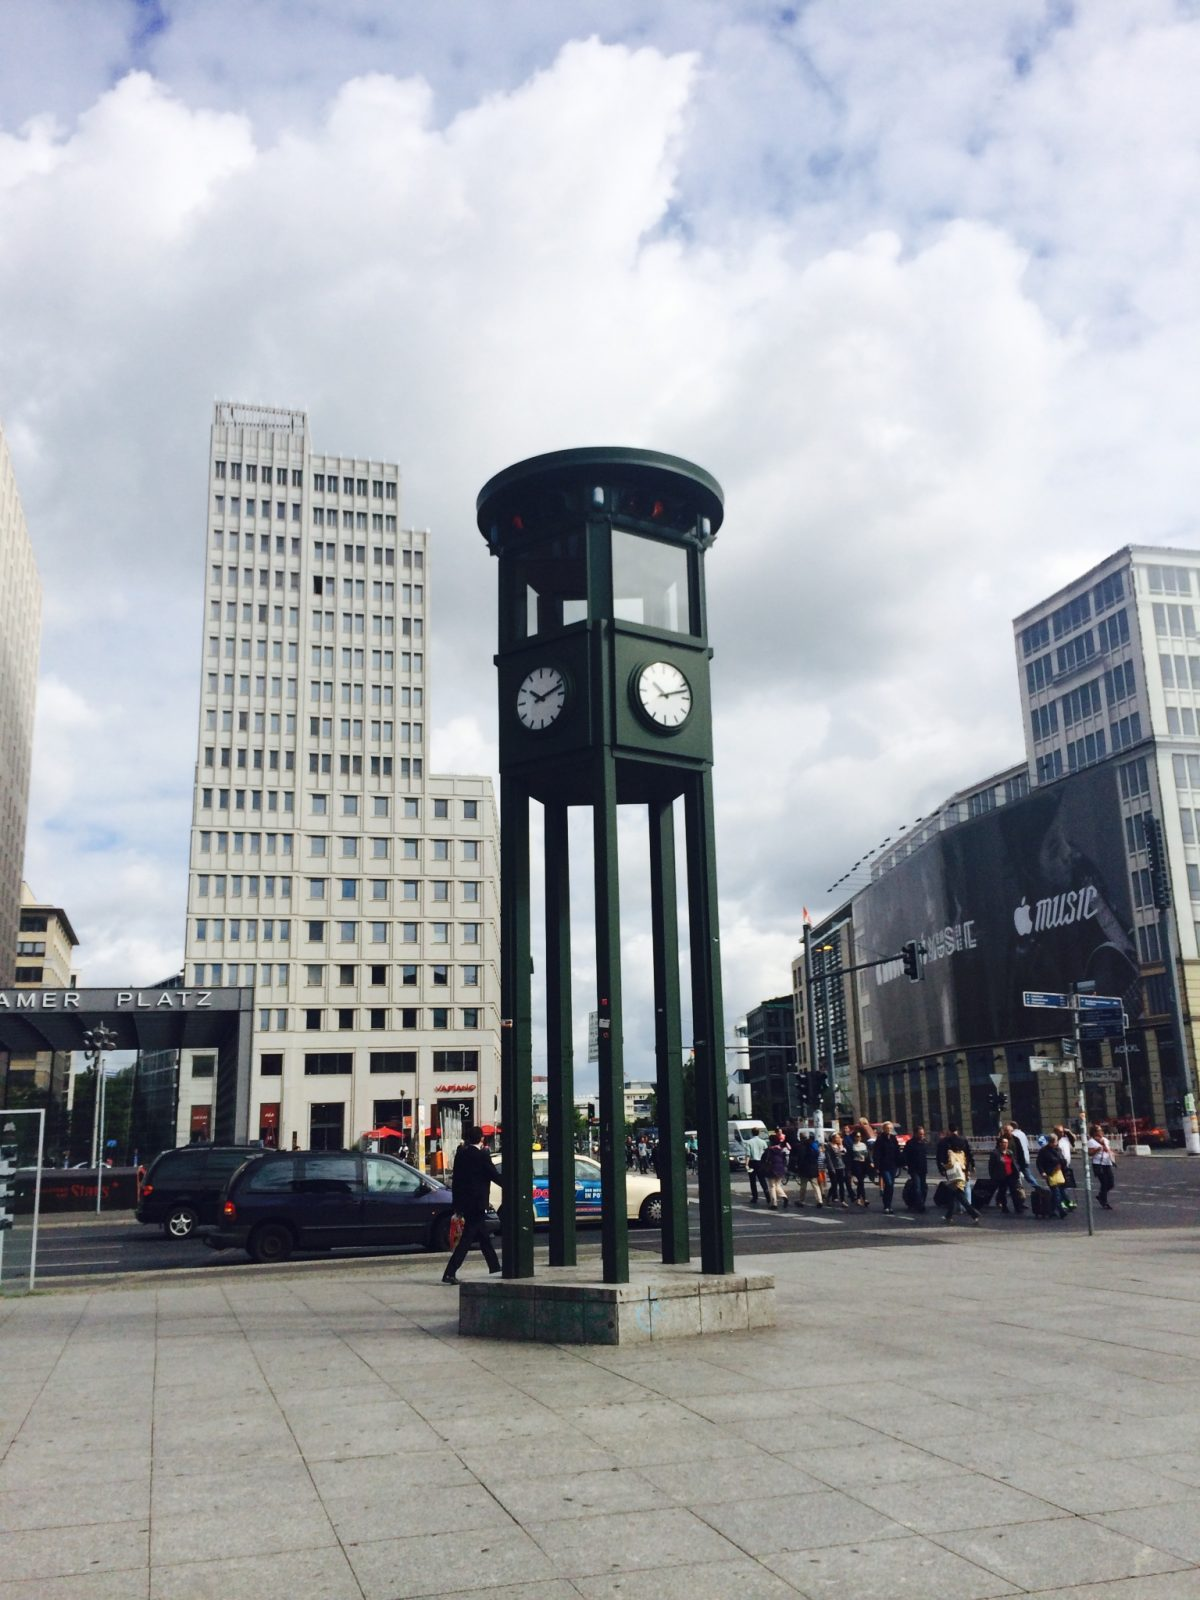 First traffic light in continental Europe